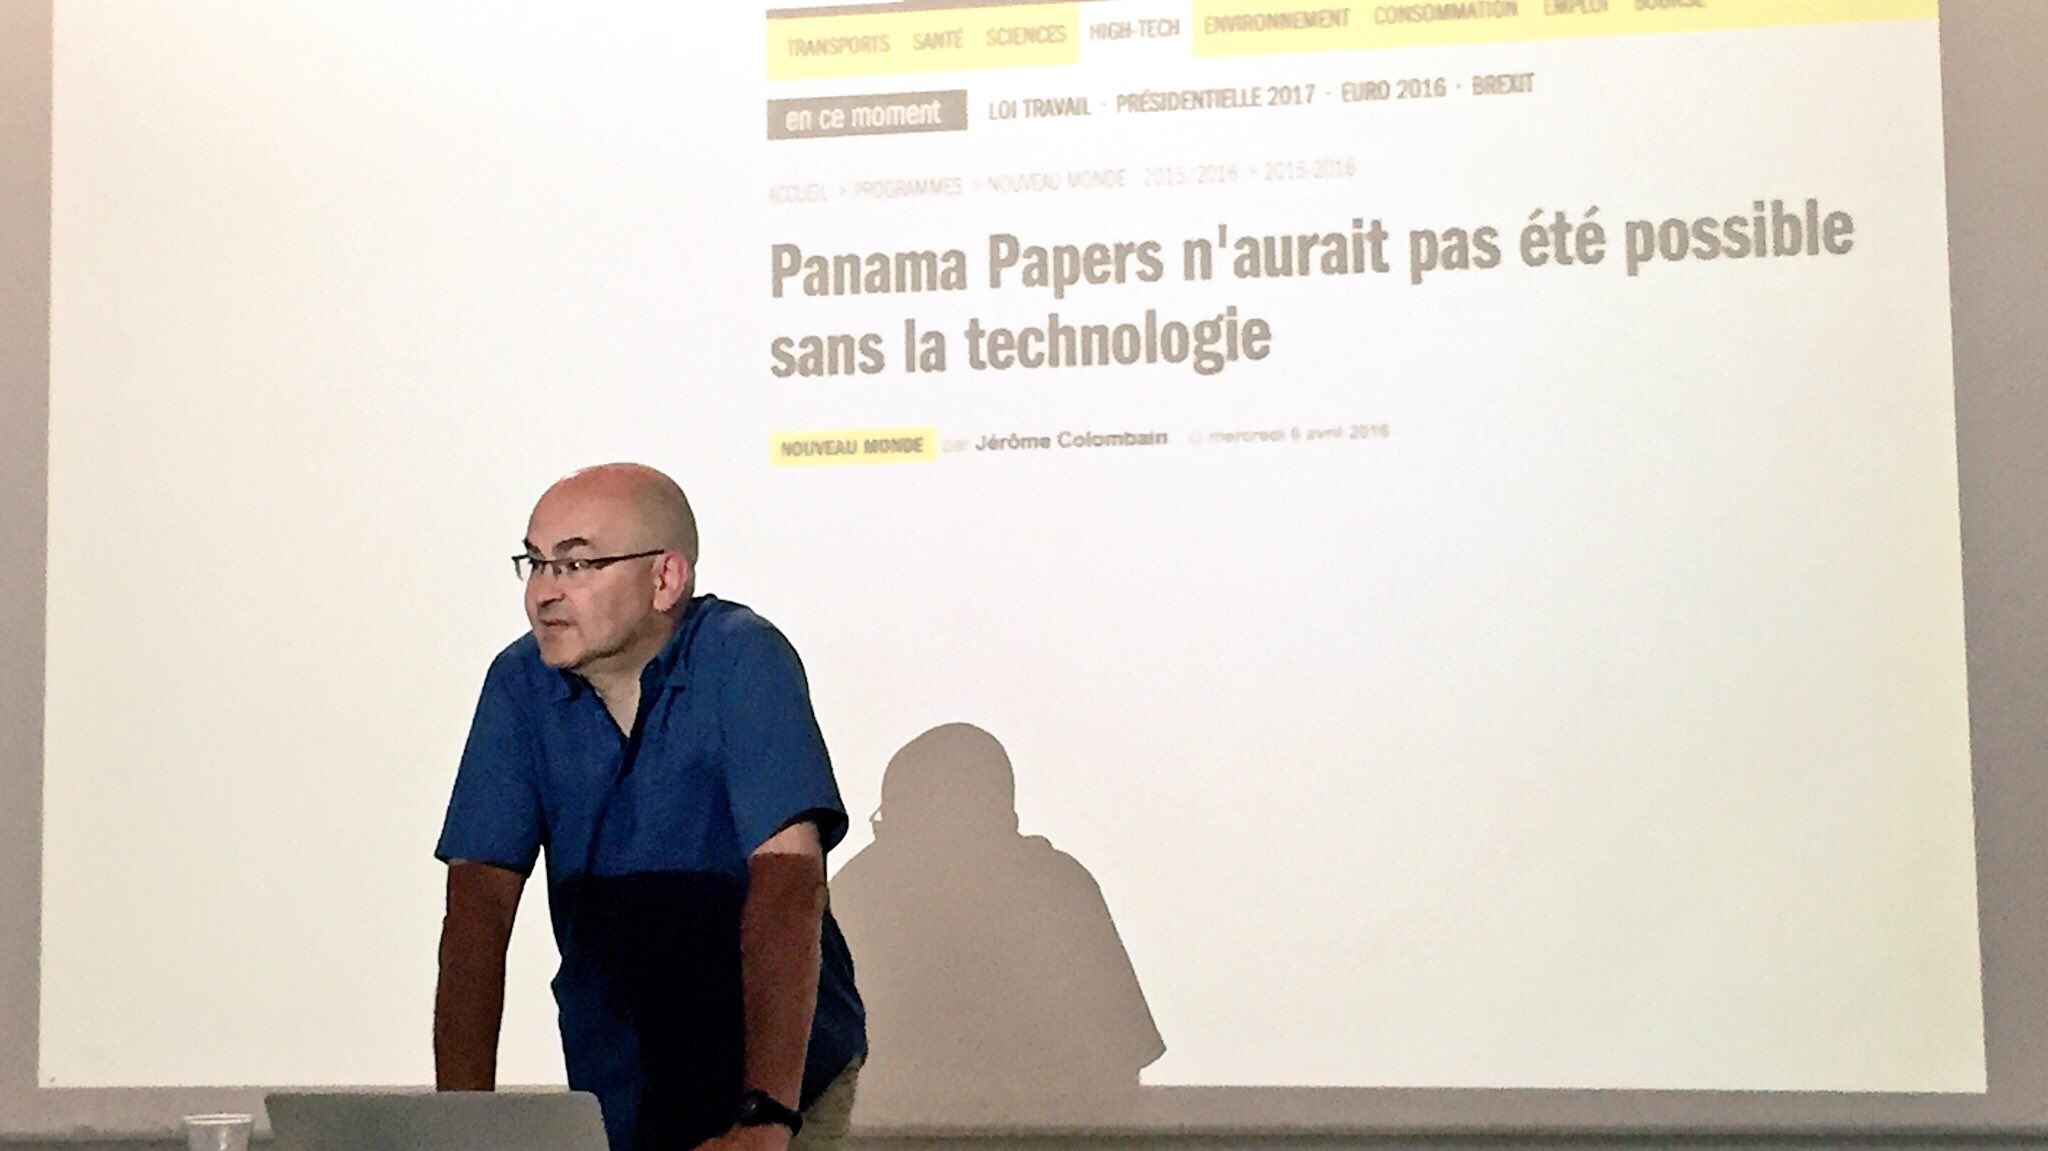 Smart cities, démocratie, écologie, information. @pascal_guitton dresse 1 panorama d applis du numérique #scienceDD https://t.co/UDtgqN7eAS